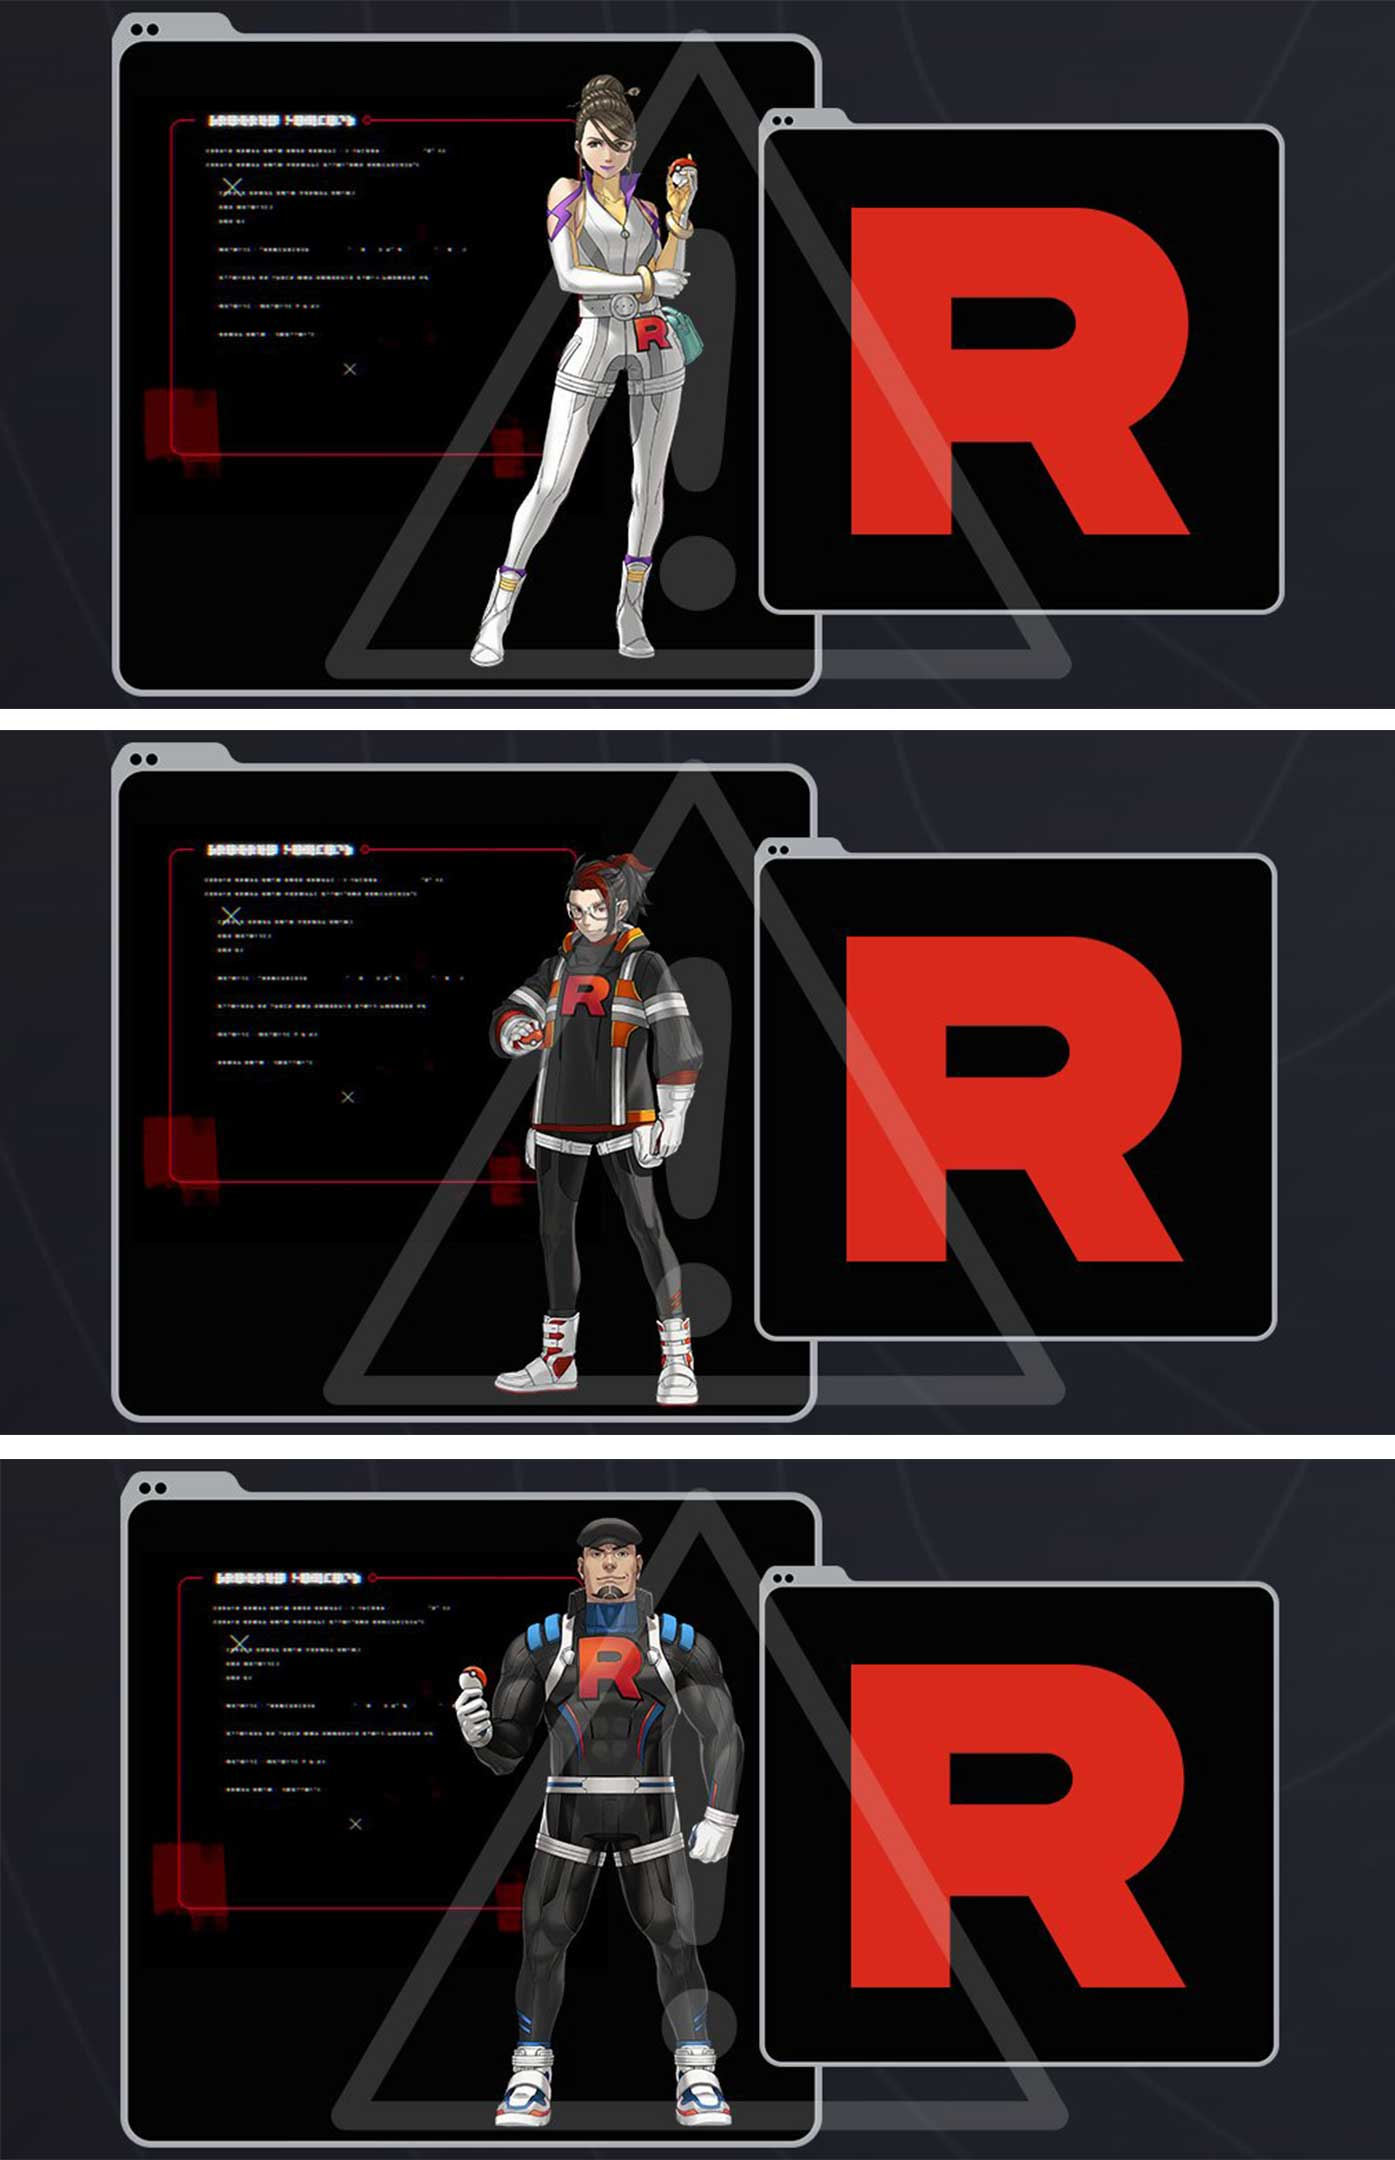 Three new Team Rocket villains are coming to Pokémon Go